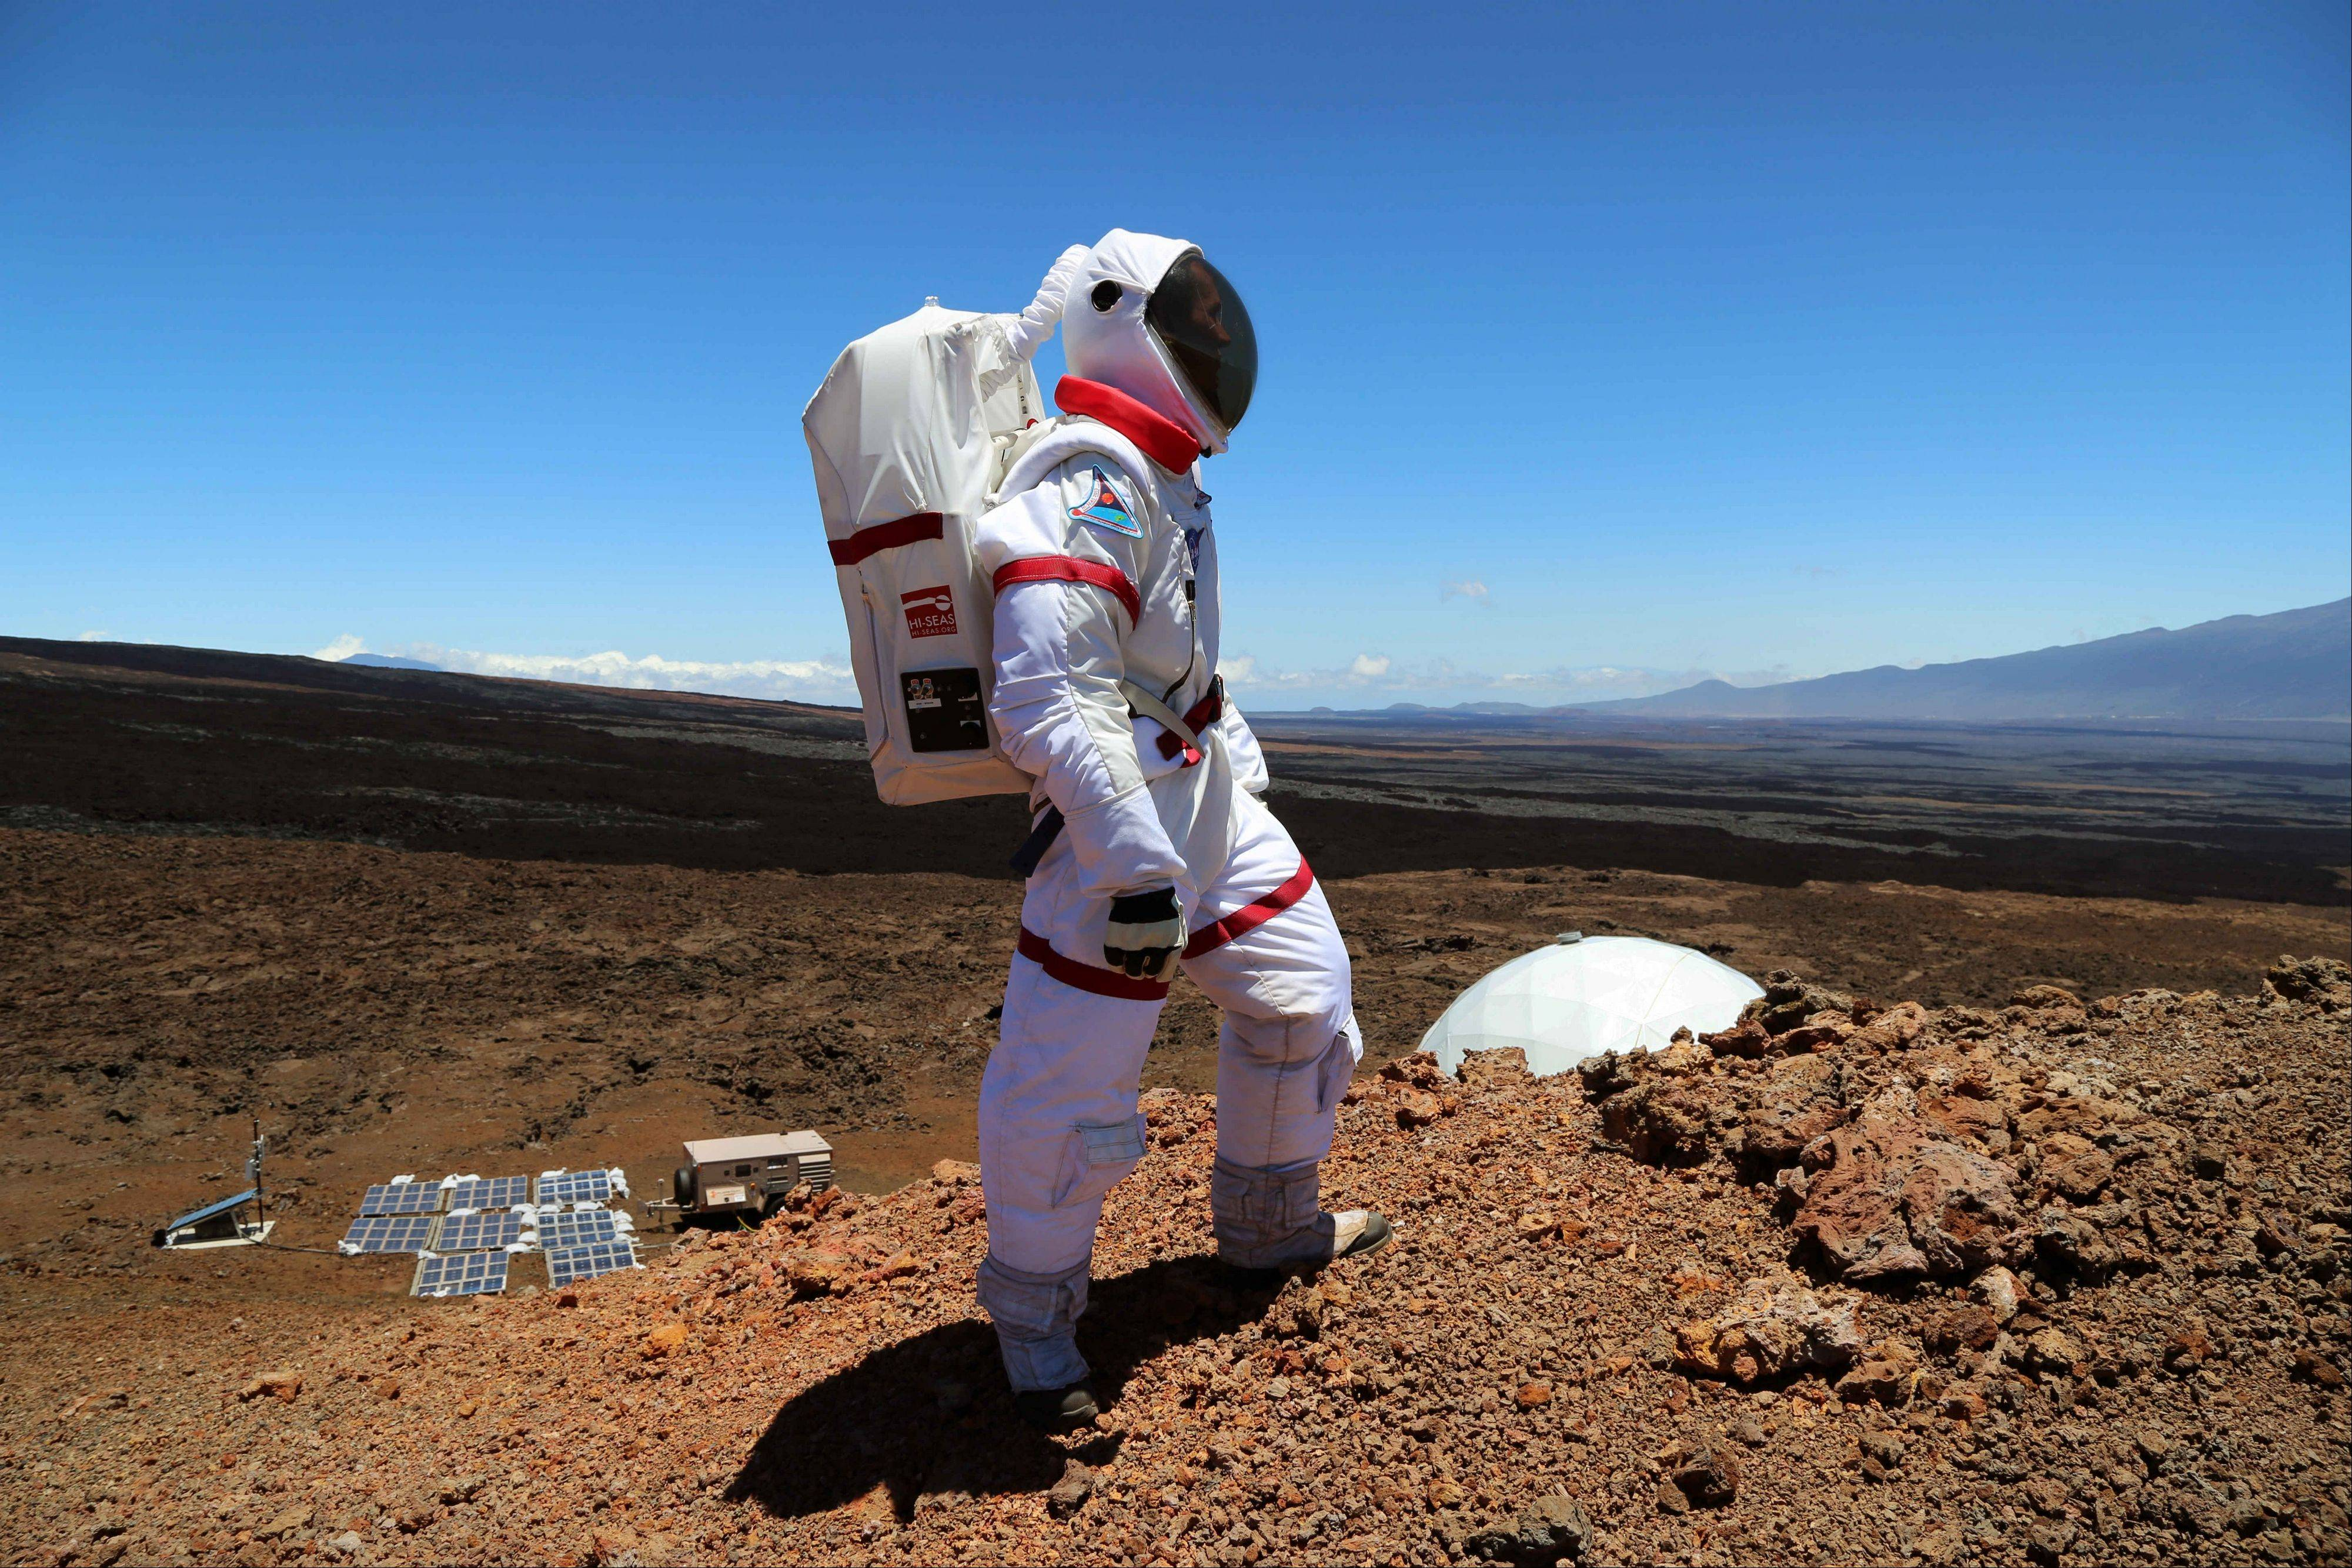 Research space scientist Oleg Abramov walks outside simulated Martian base at Mauna Loa, Hawaii. Six researchers have spent the past four months living in a small dome on a barren Hawaii lava field at 8,000 feet, trying to figure out what foods astronauts might eat on Mars and during deep-space missions.